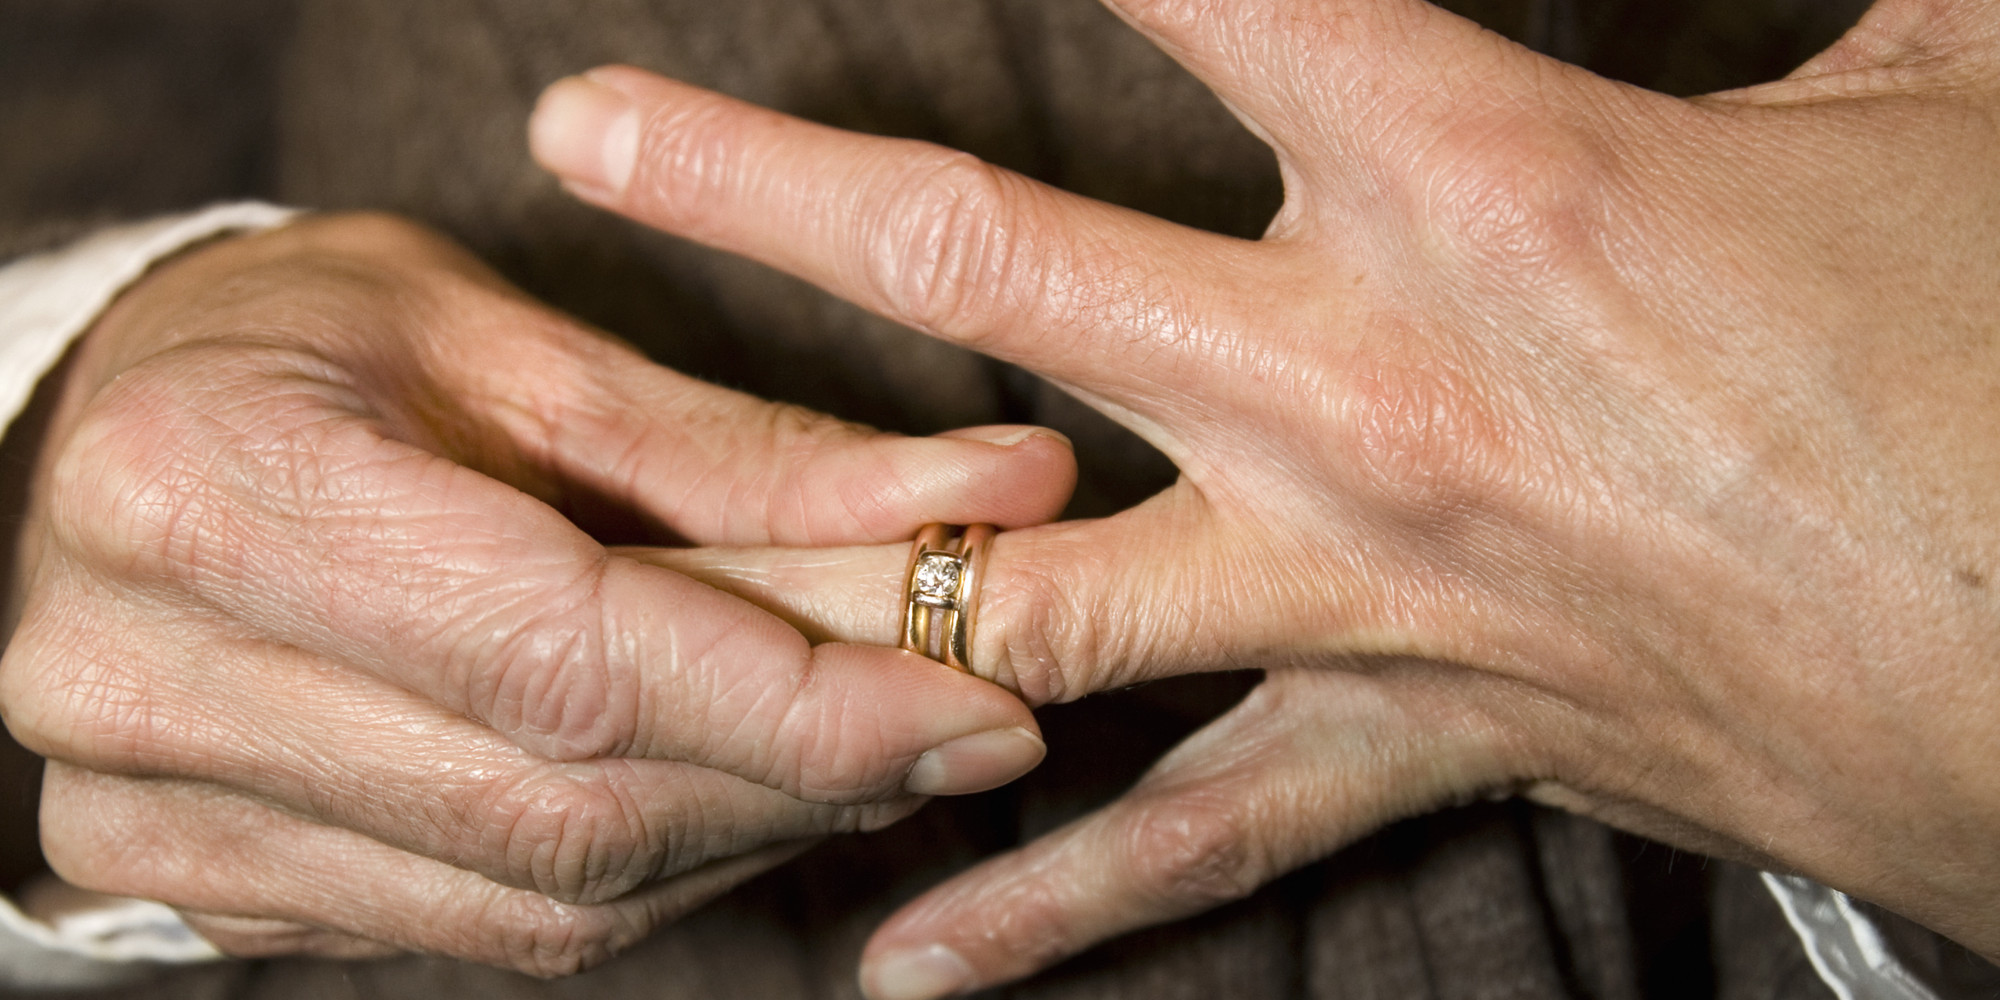 REVEALED Why People Remove Their Wedding Rings